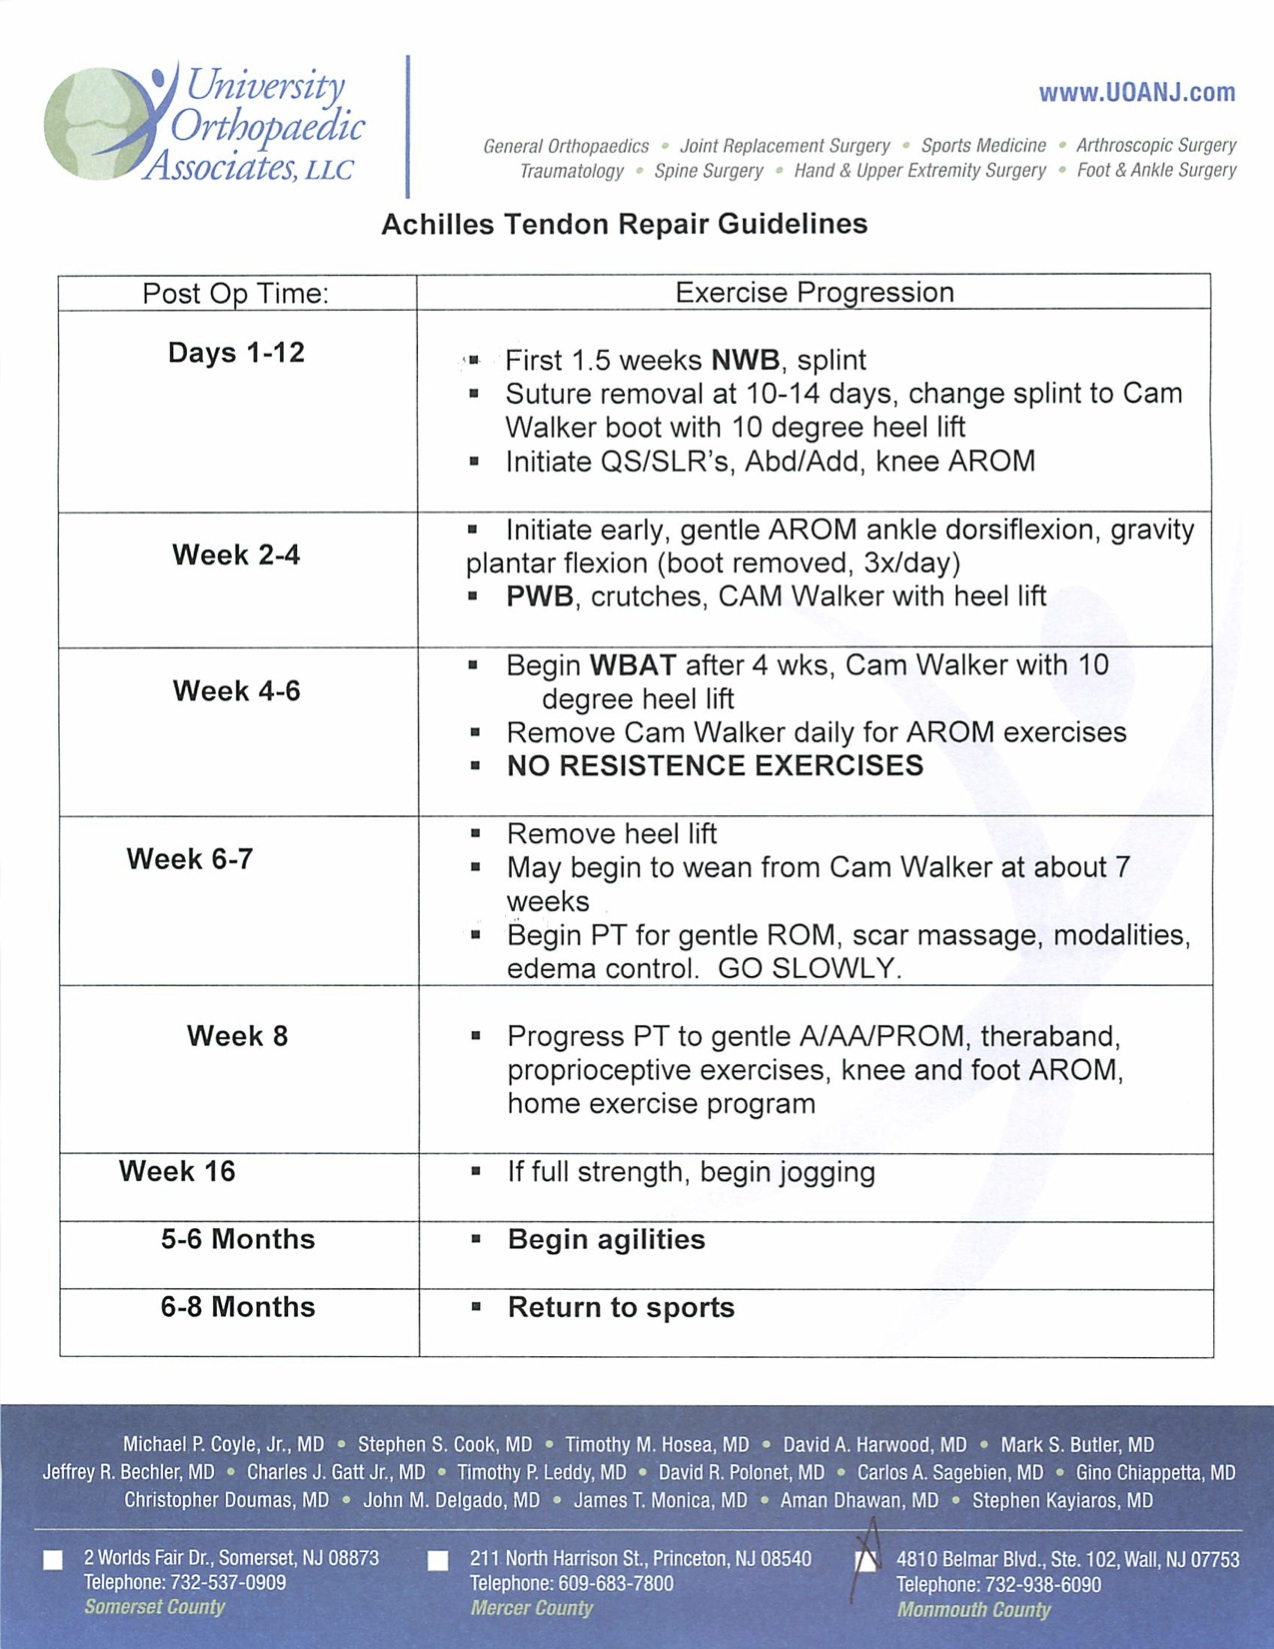 Achilles tendon rupture physical therapy - Achilles Tendon Repair Guidelines